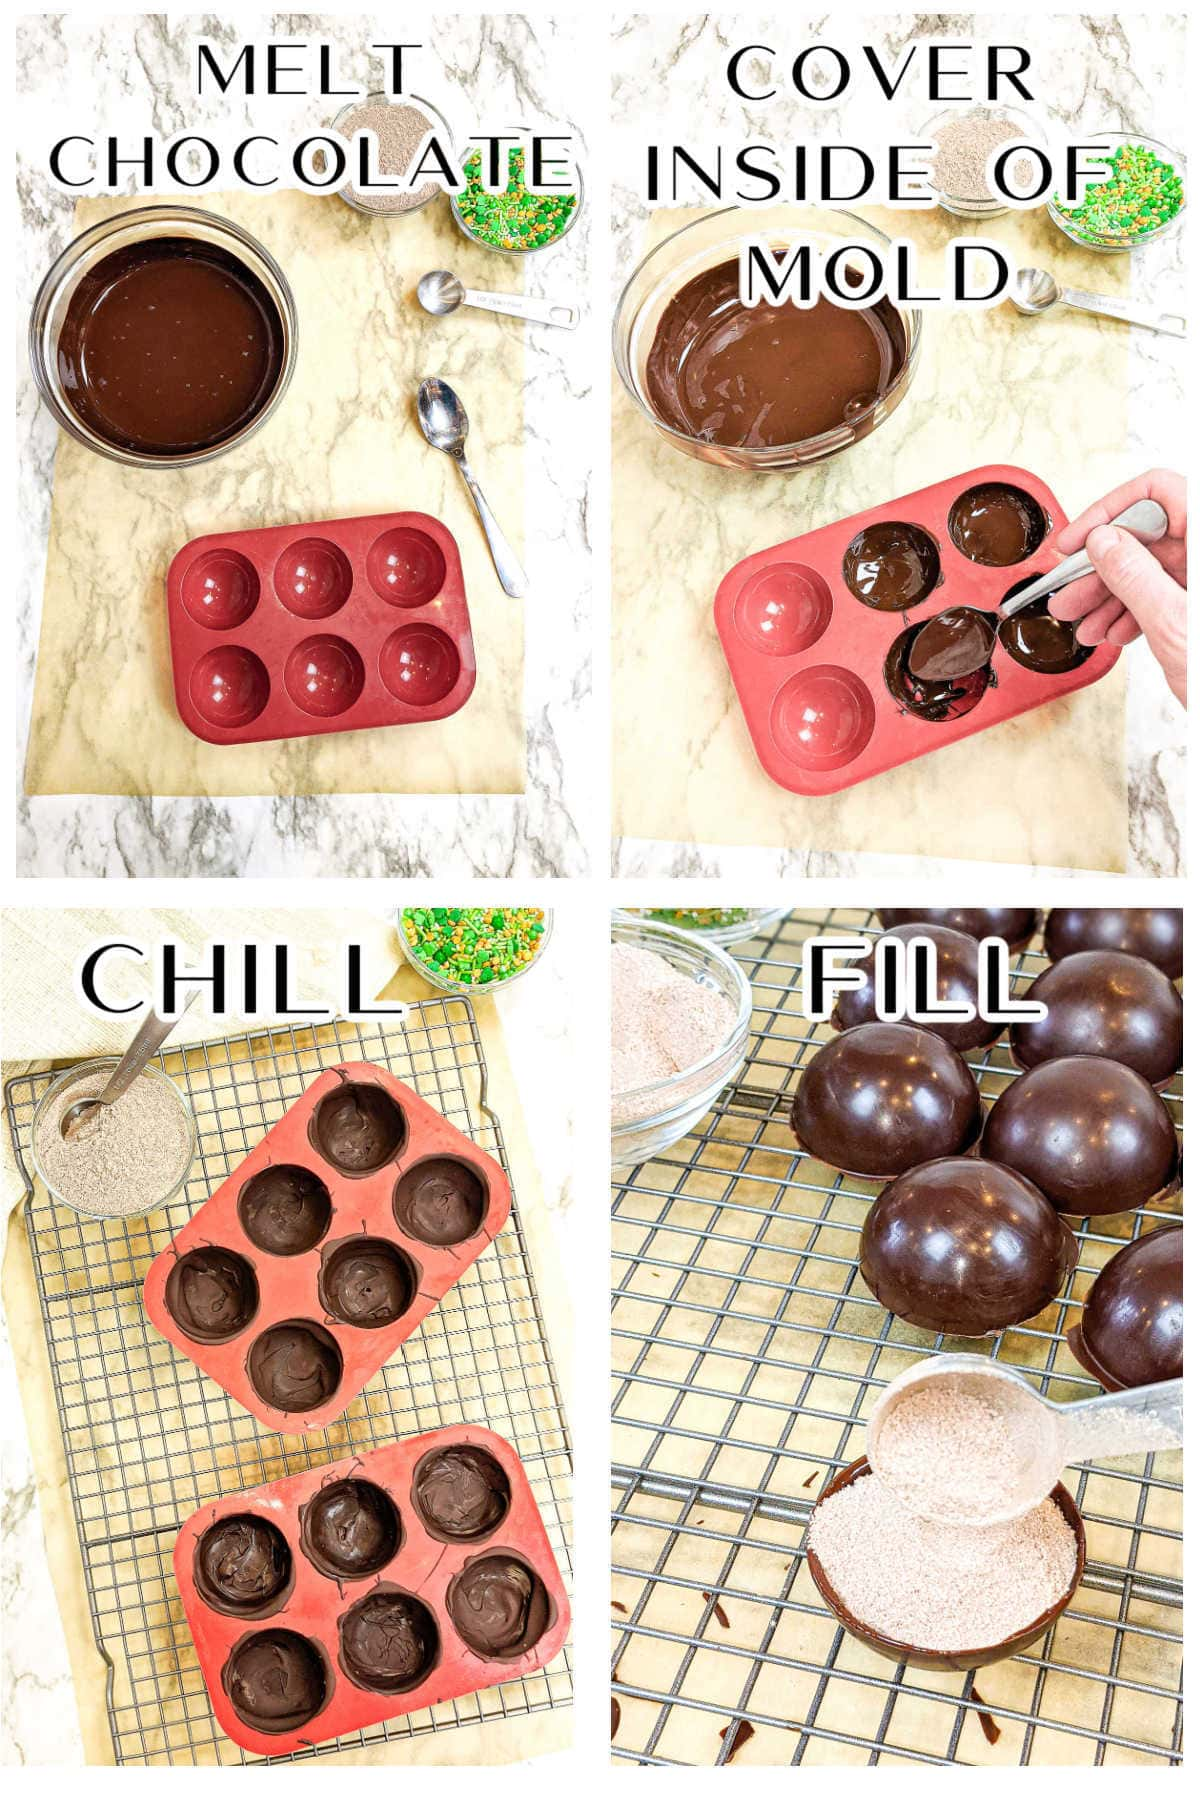 Step by step images to make the hot chocolate bombs shell.